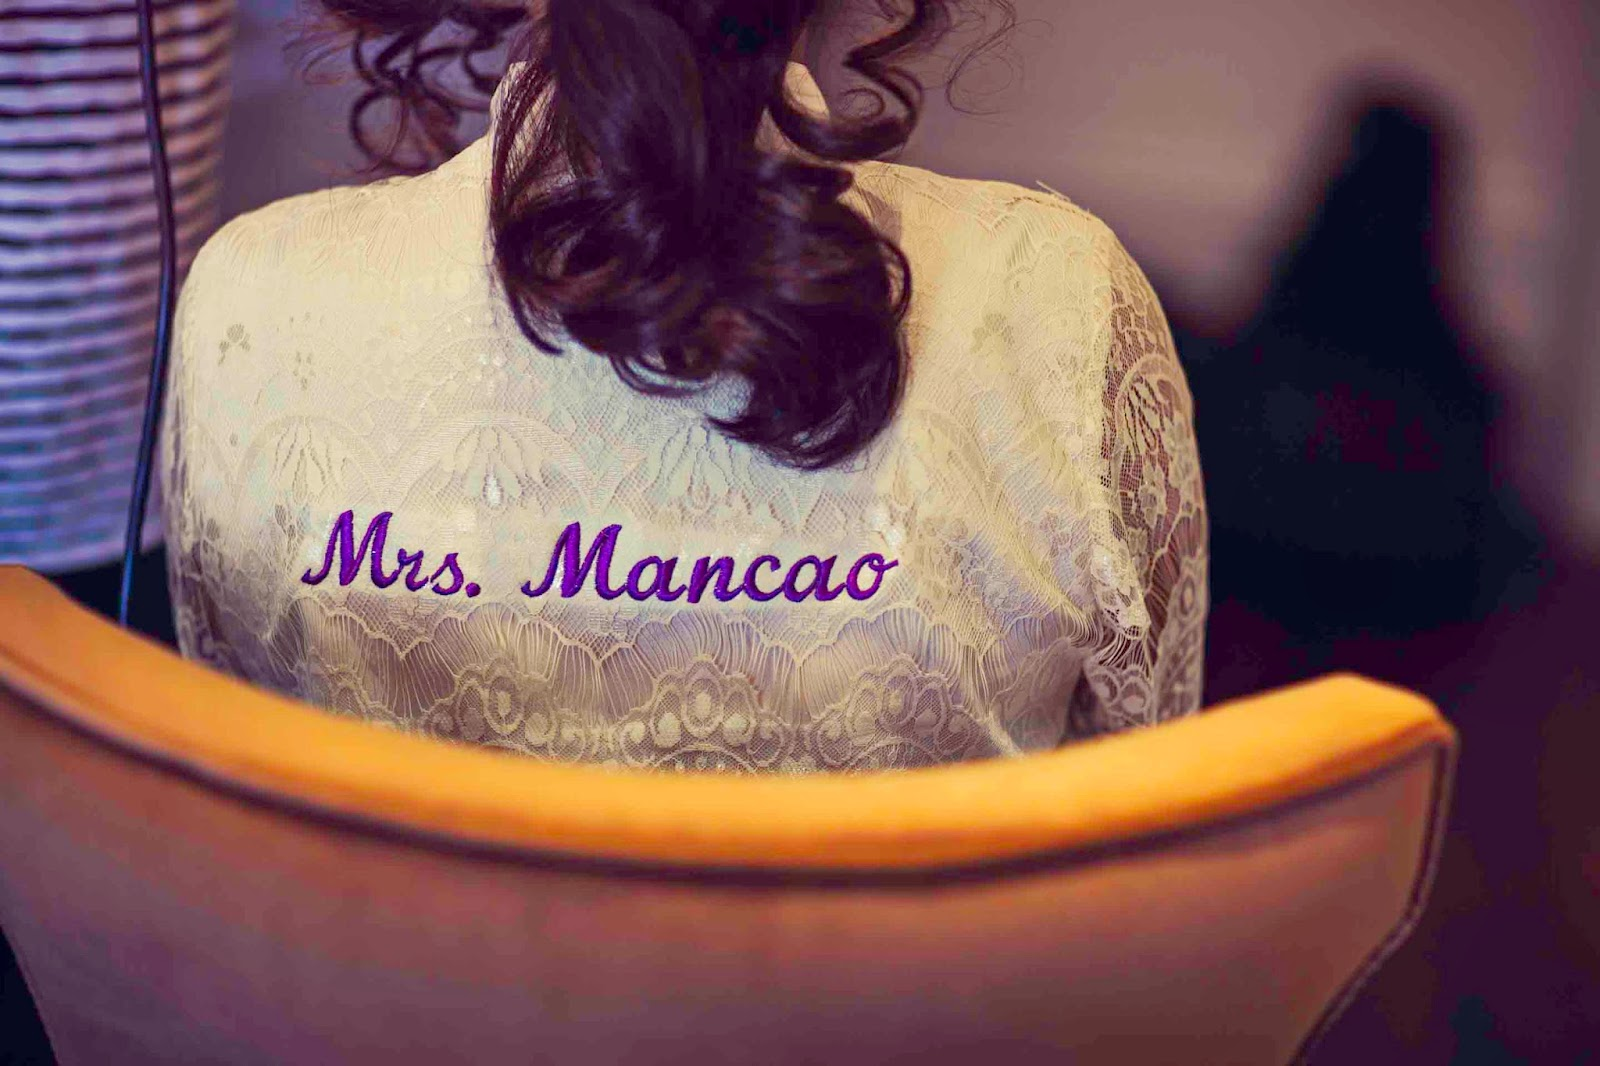 Soon to be Mrs. Mancao